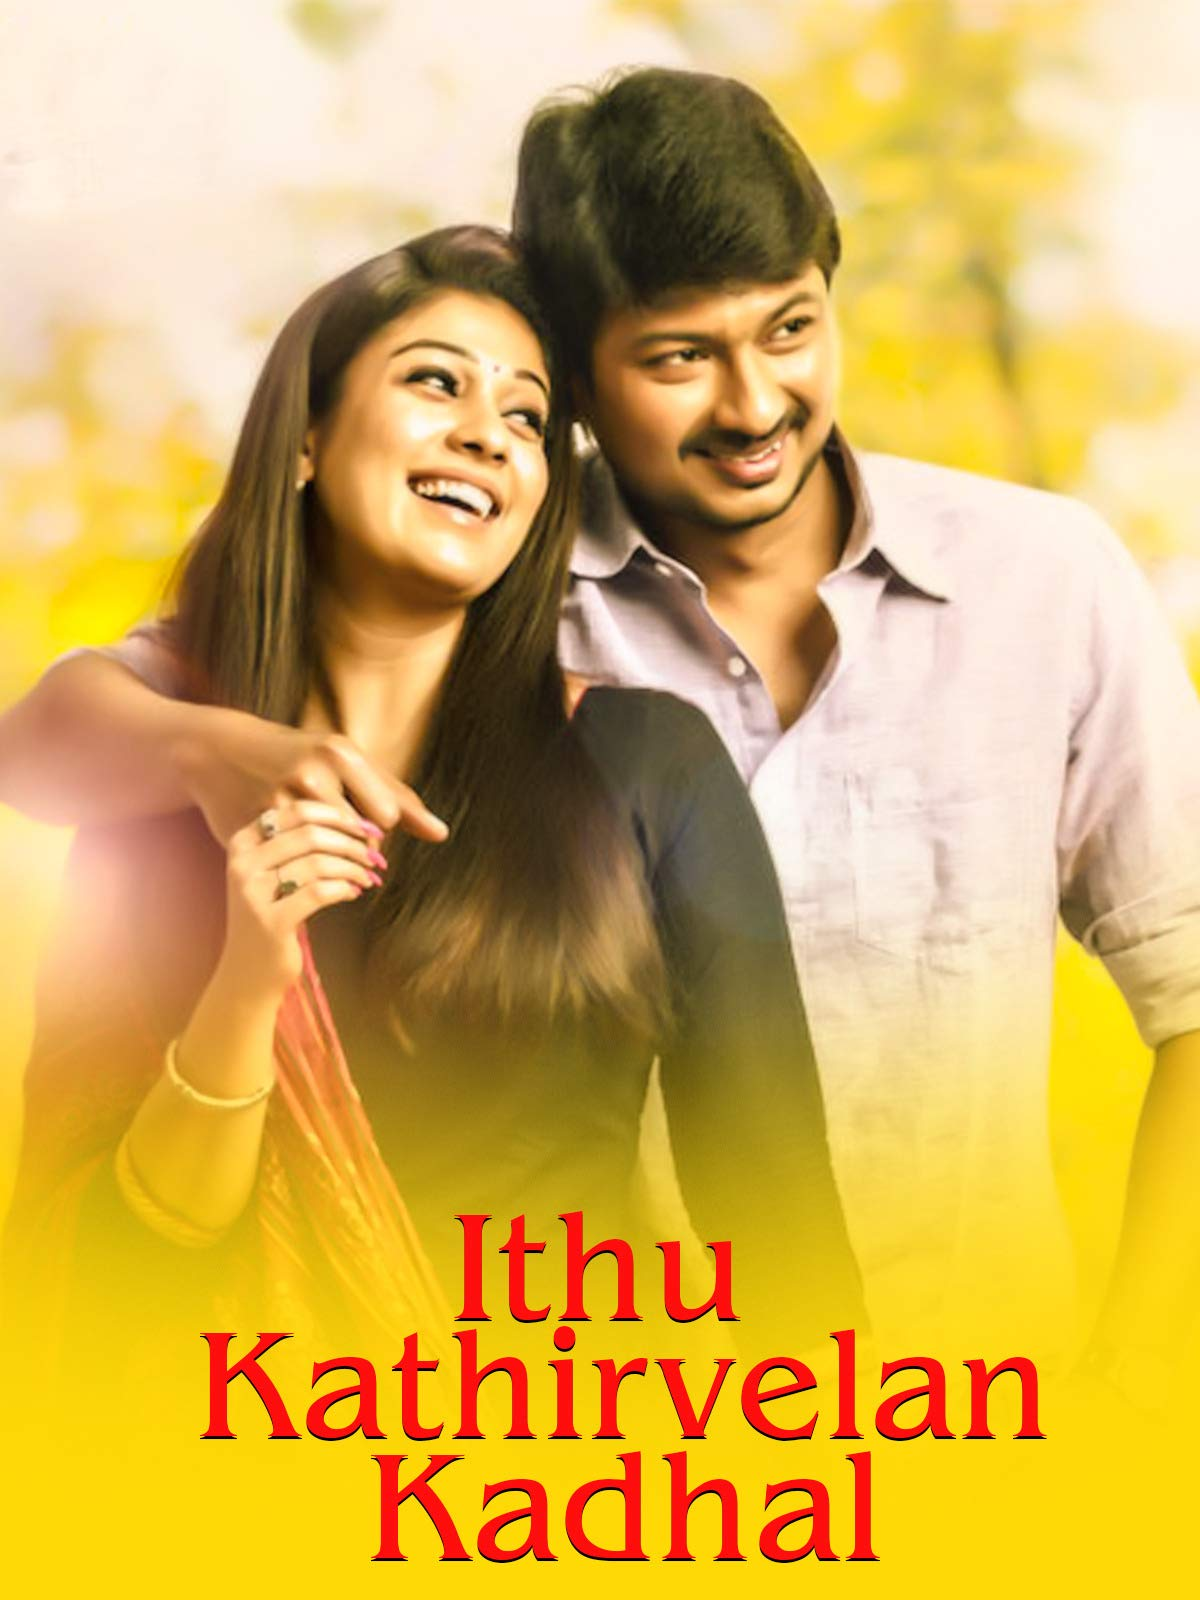 Ithu Kathirvelan Kadhal (2021) Full Movie HDRip (Hindi+Tamil)